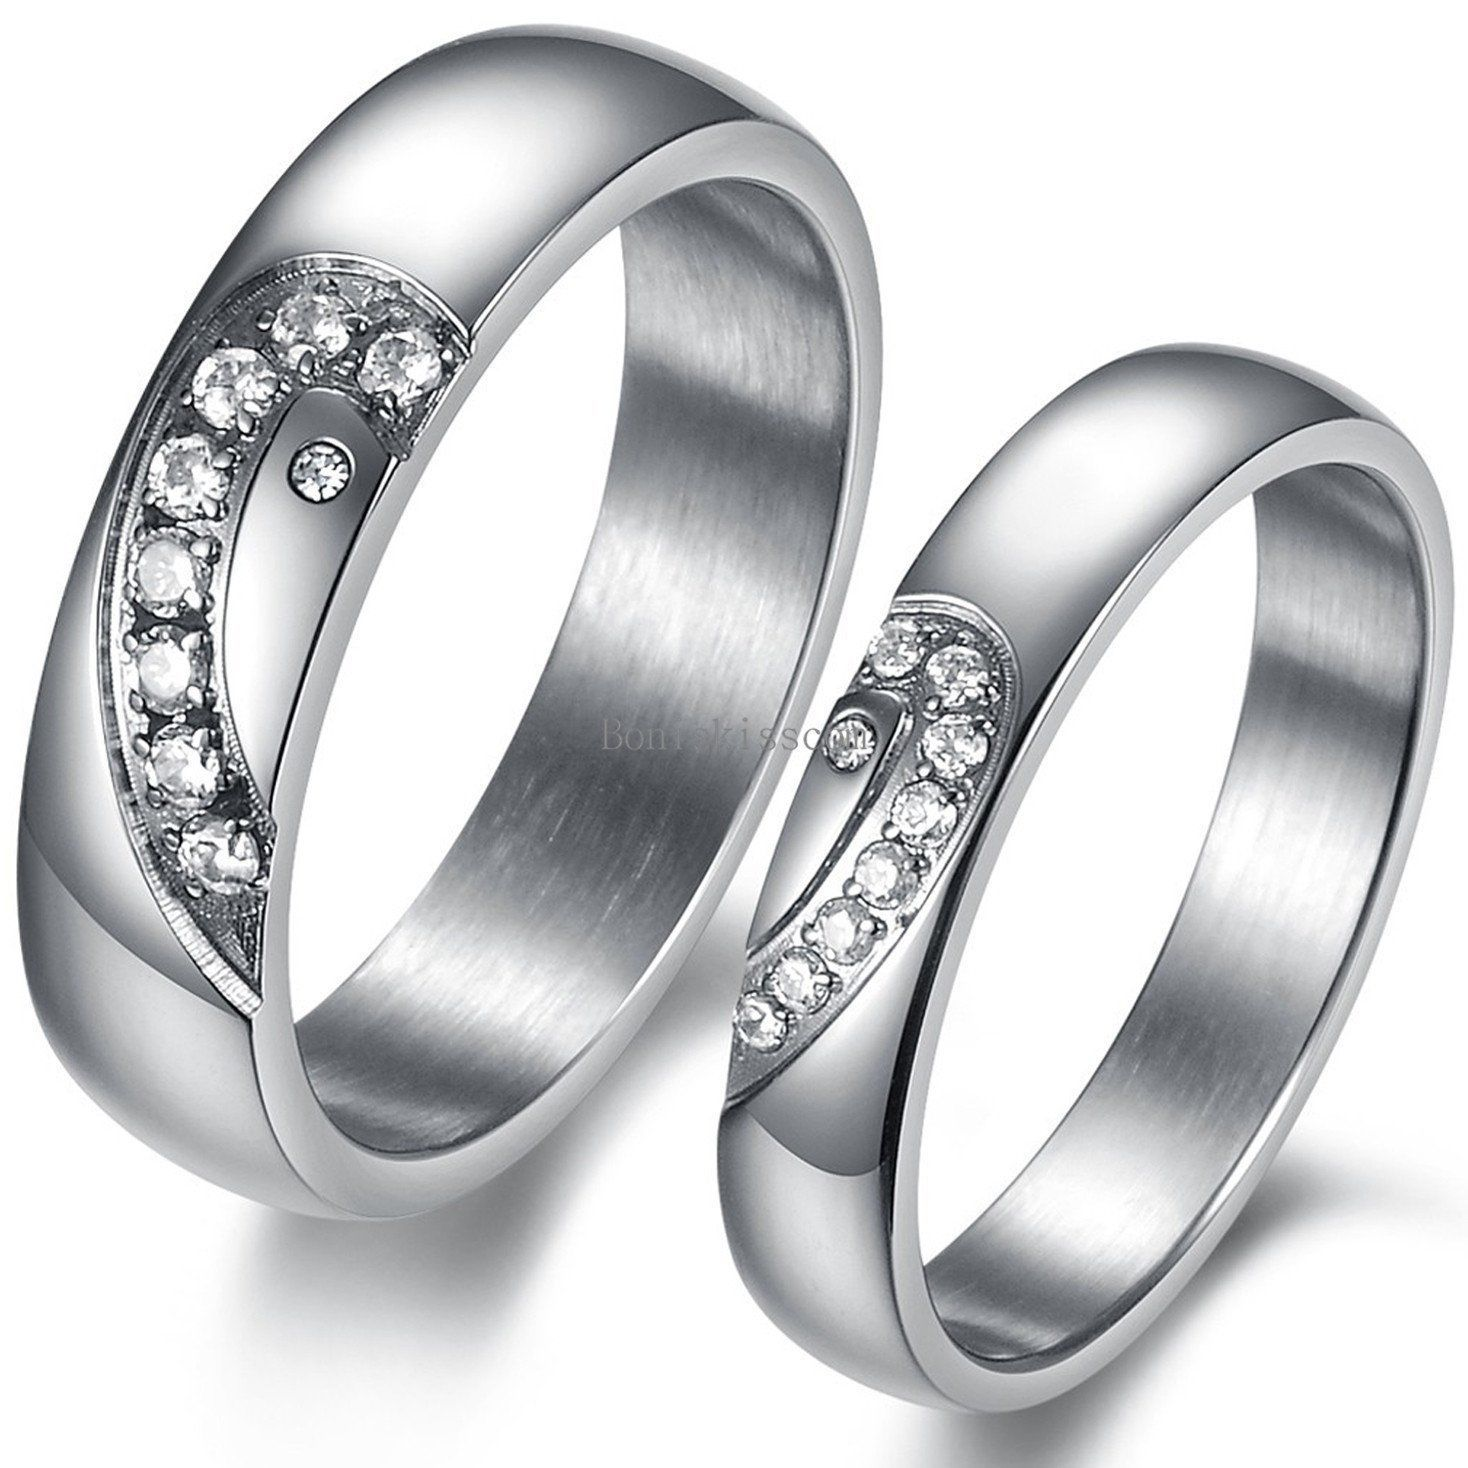 4b328bf180 $6.49 - Couples Stainless Steel Matching Heart Promise Engagement Ring  Wedding Band Gift #ebay #Fashion